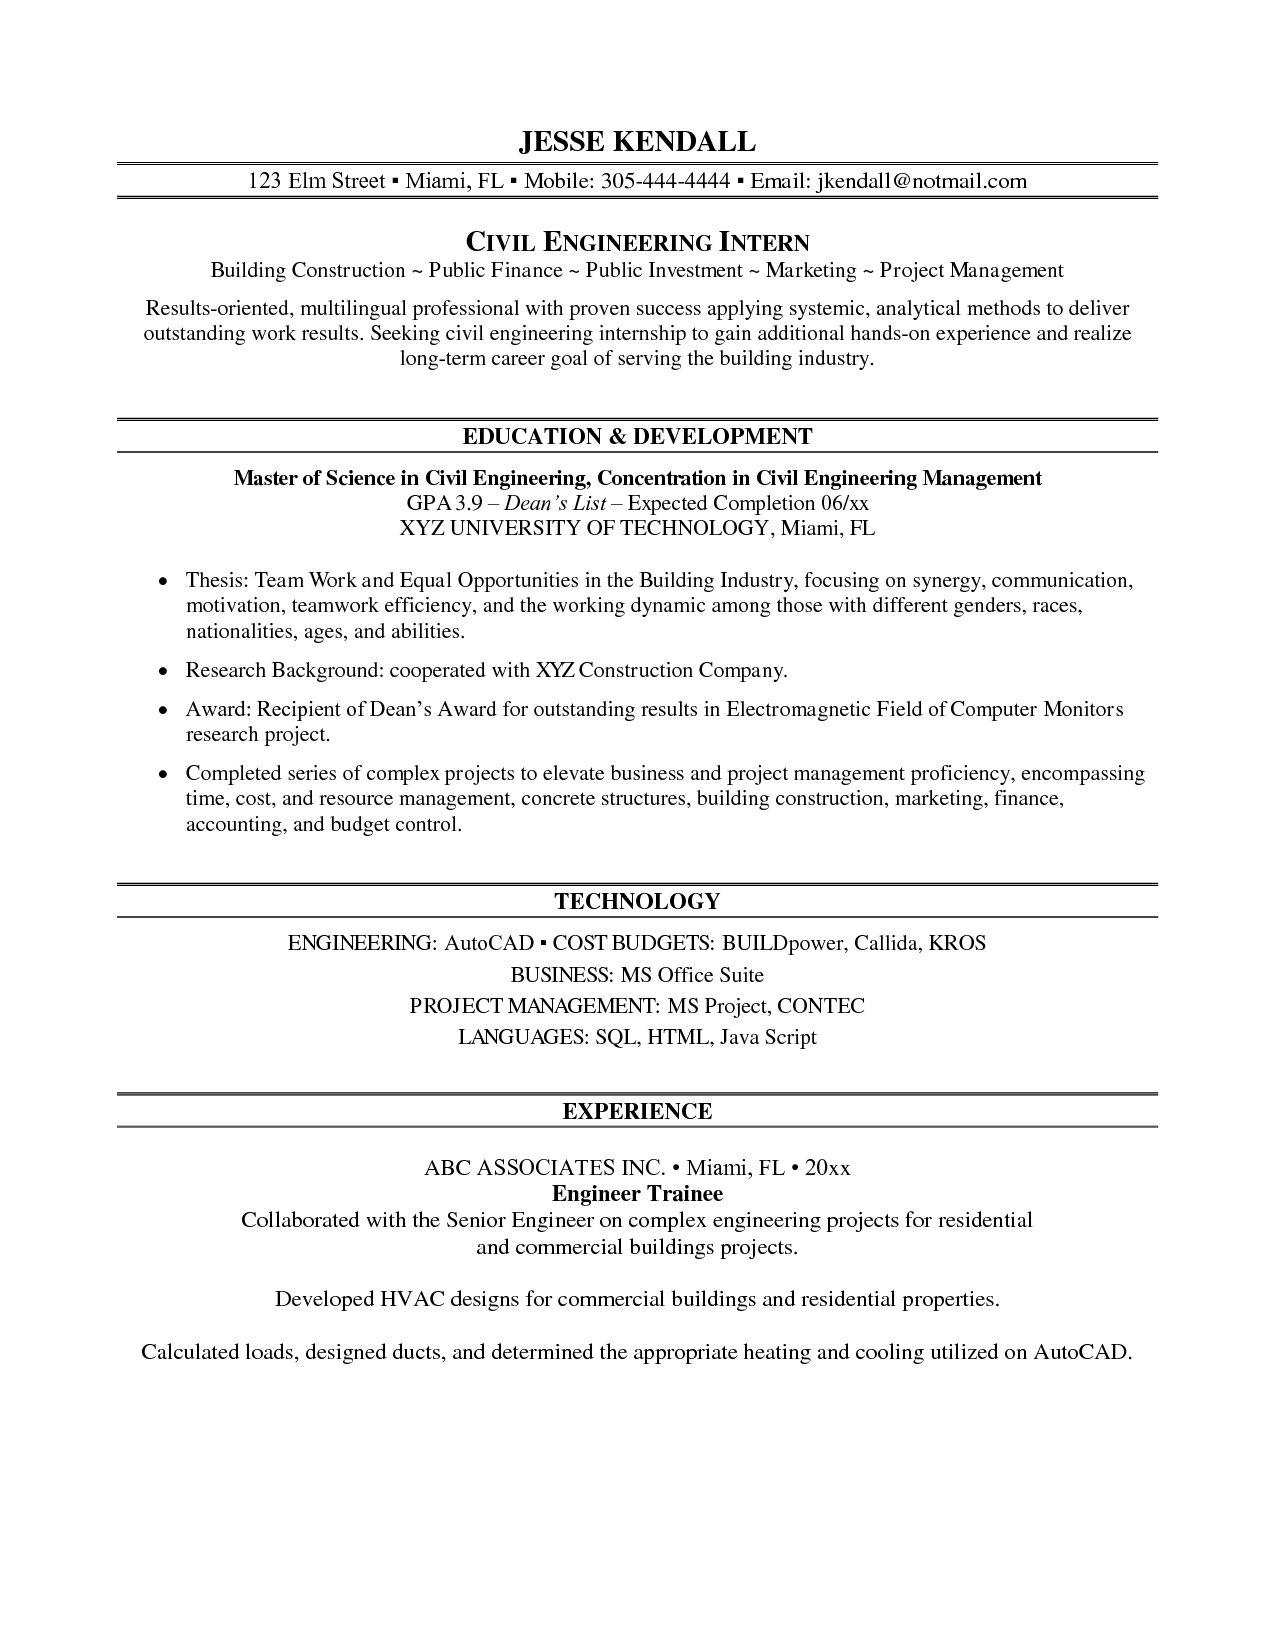 Internship On Resume Best Template Collection - http://www.jobresume ...